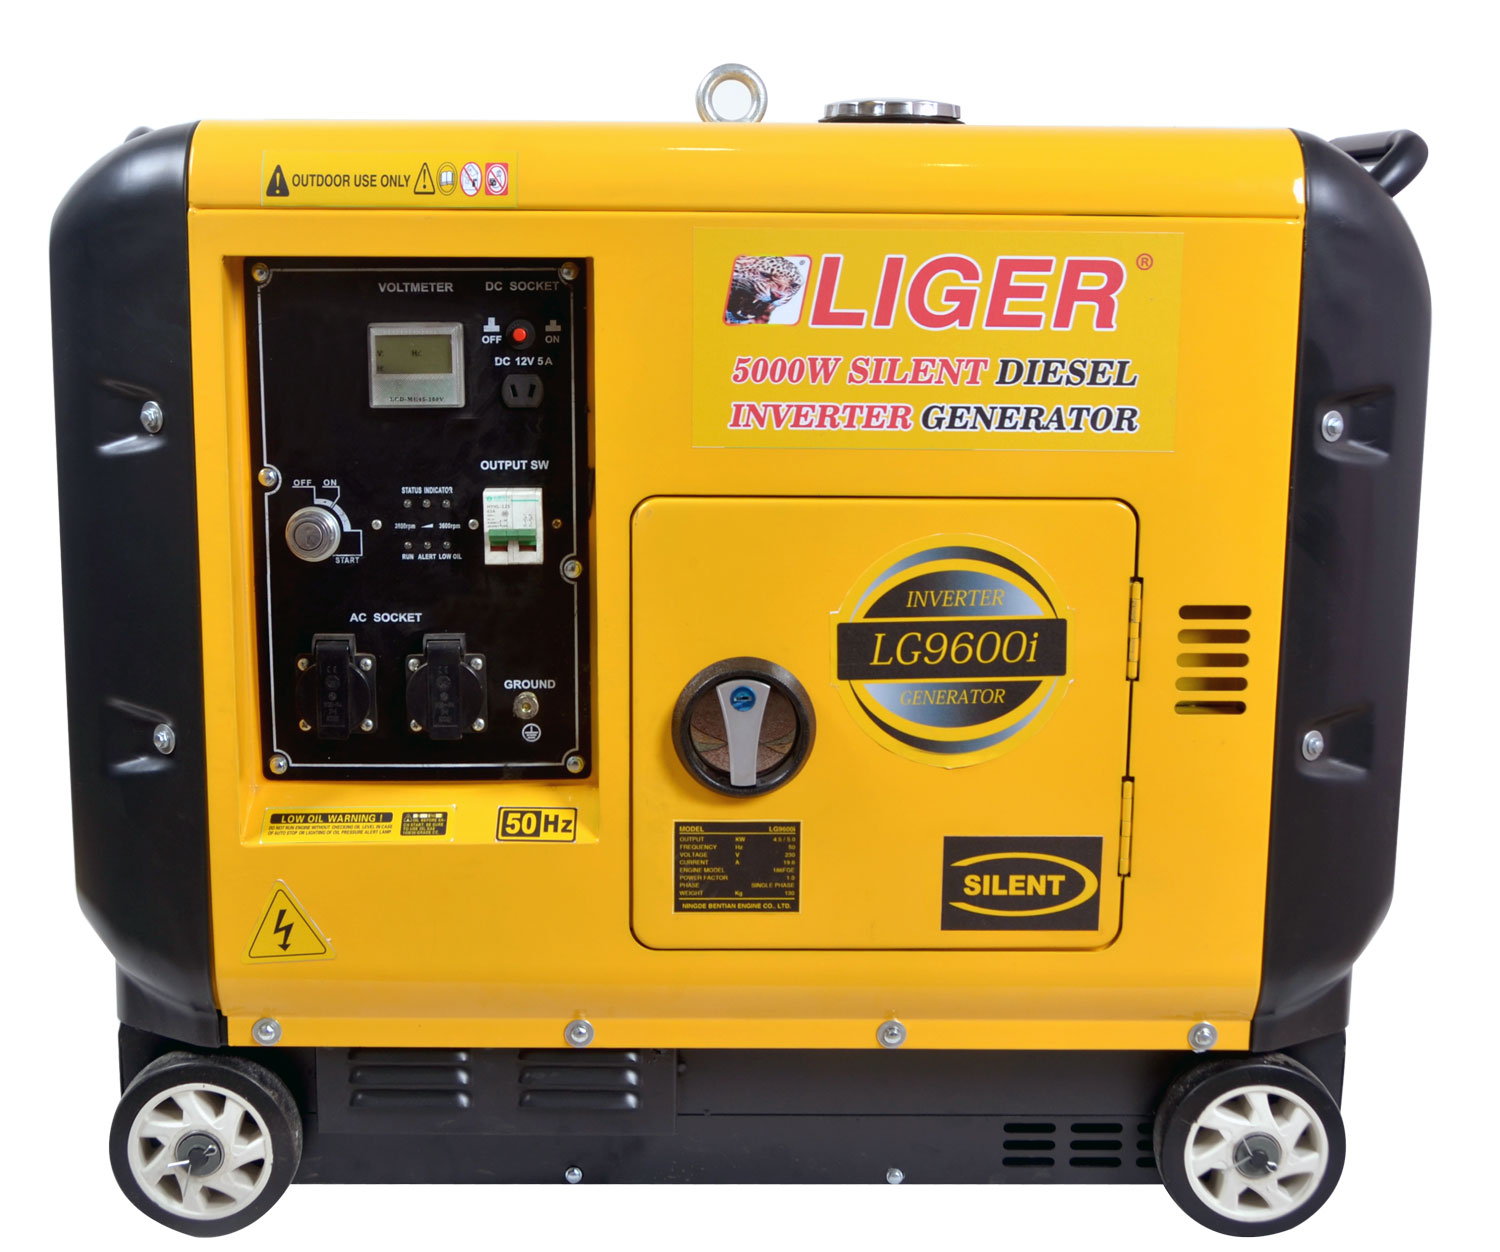 LG9600i Air-cooled Silent Diesel Generator